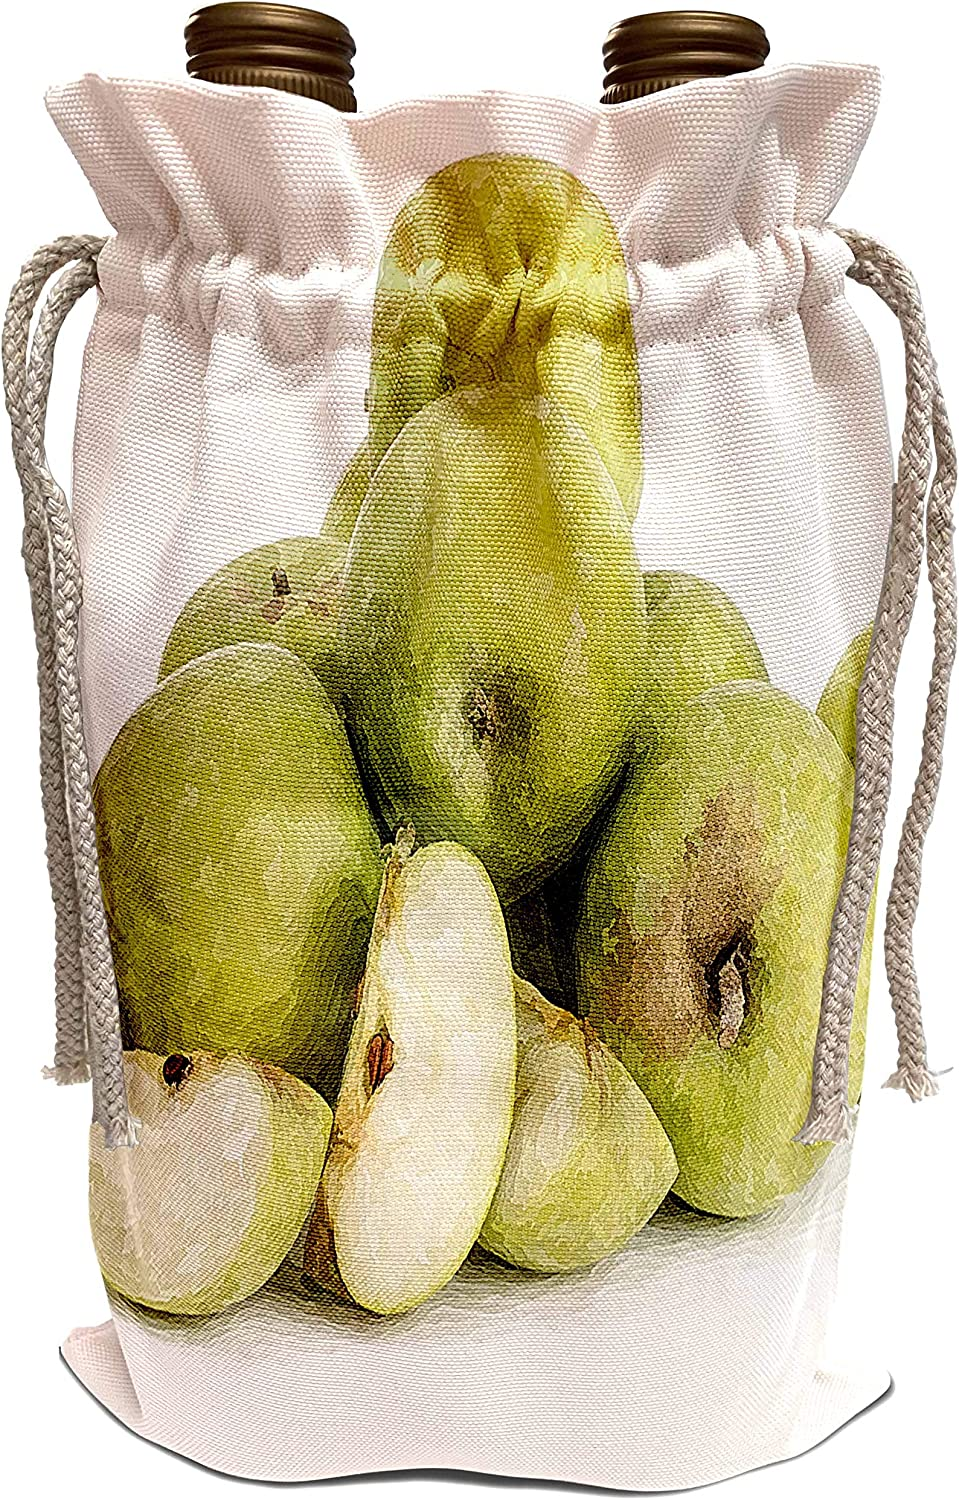 3dRose Alexis Design - Fruits And Berries - Green apples. Summer fruits. Digital painting. Decorative gift - Wine Bag (wbg_320883_1)